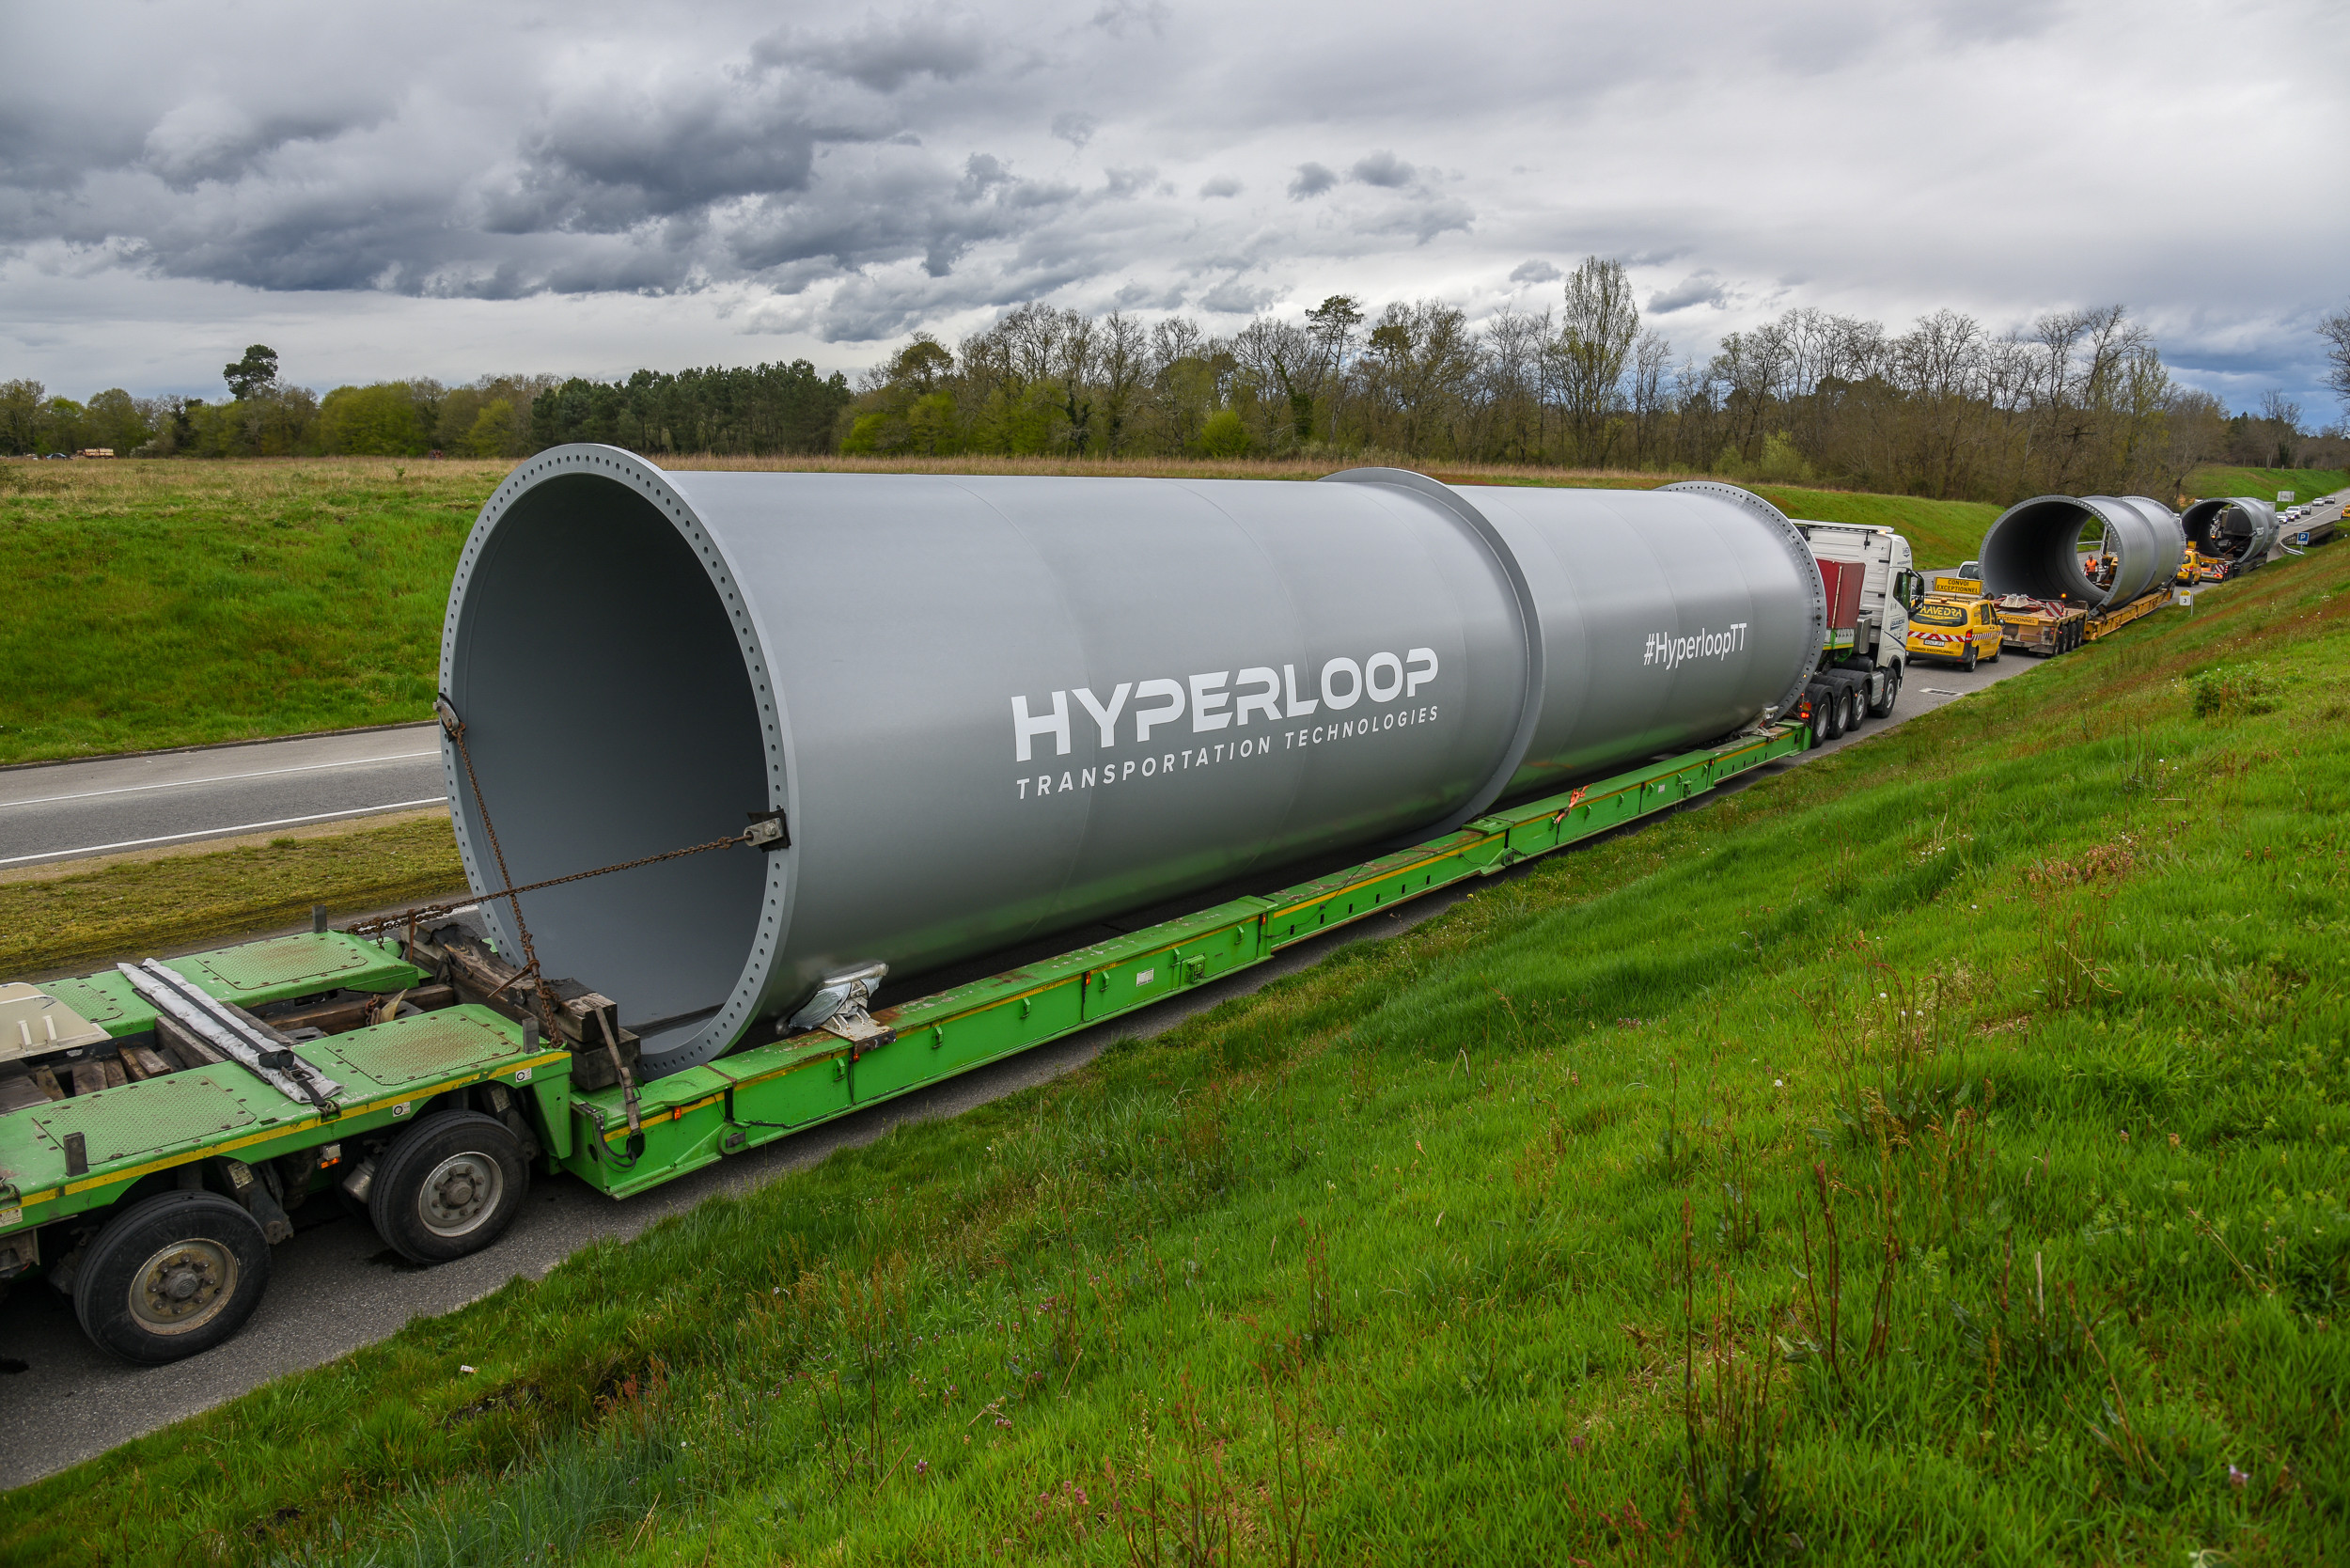 Europe's first hyperloop test track is under construction